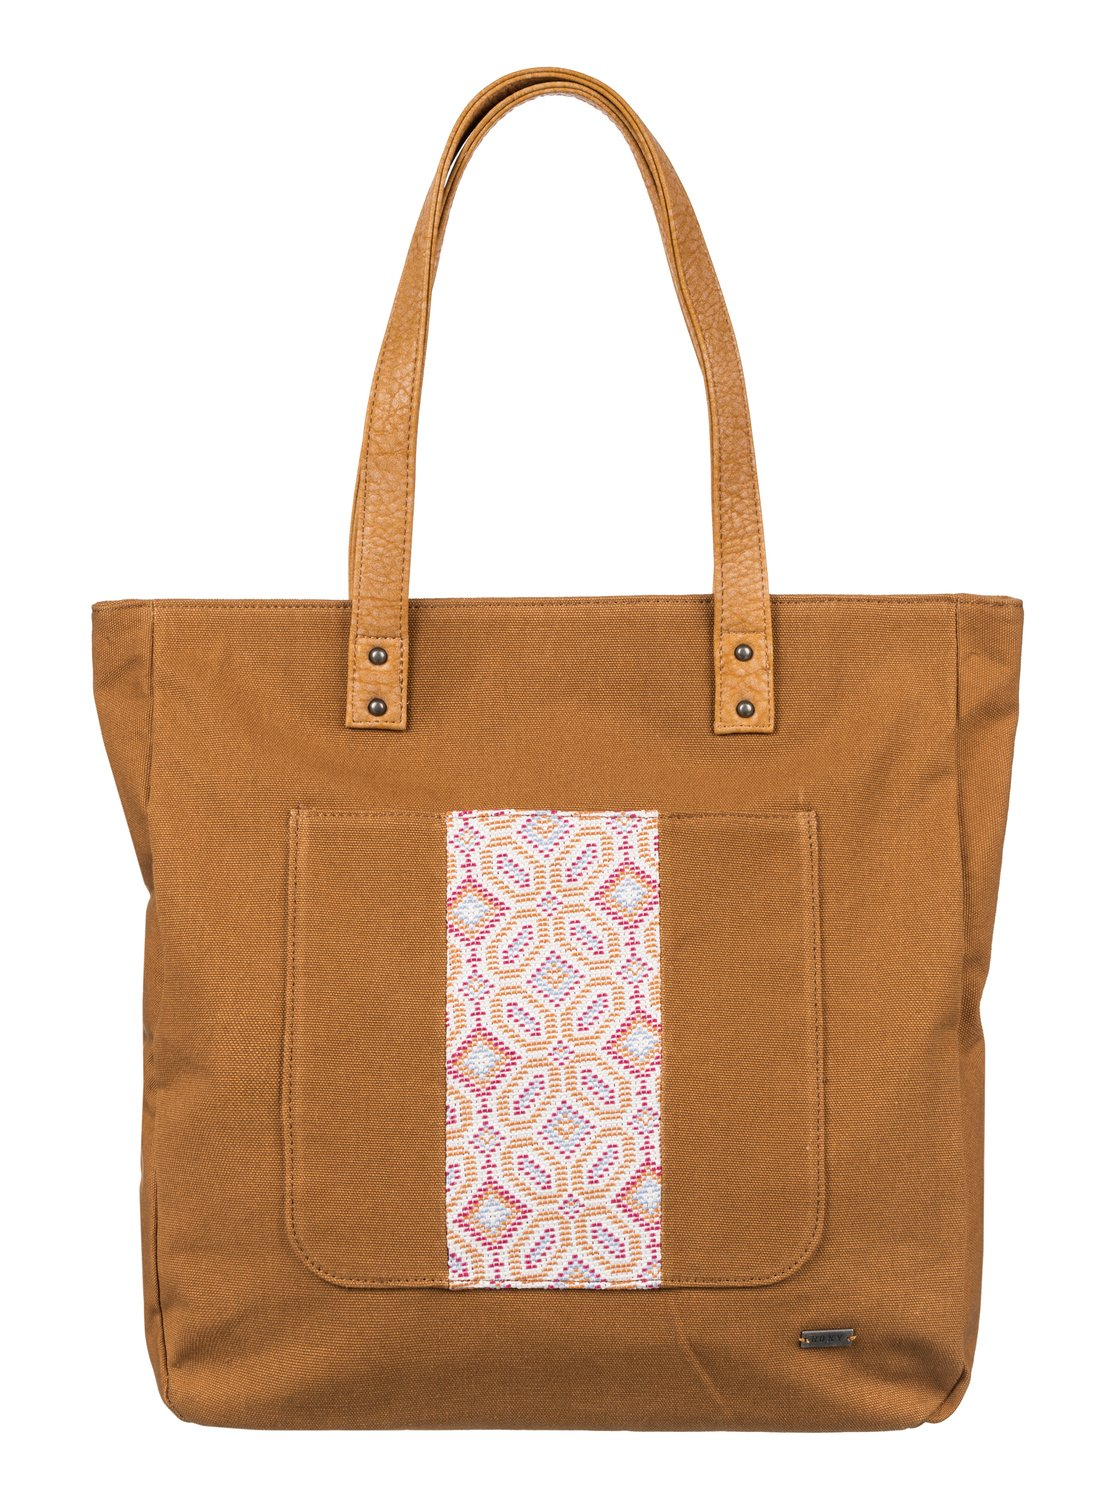 Magic In The Air - Bolsa Tote para Mujer Roxy